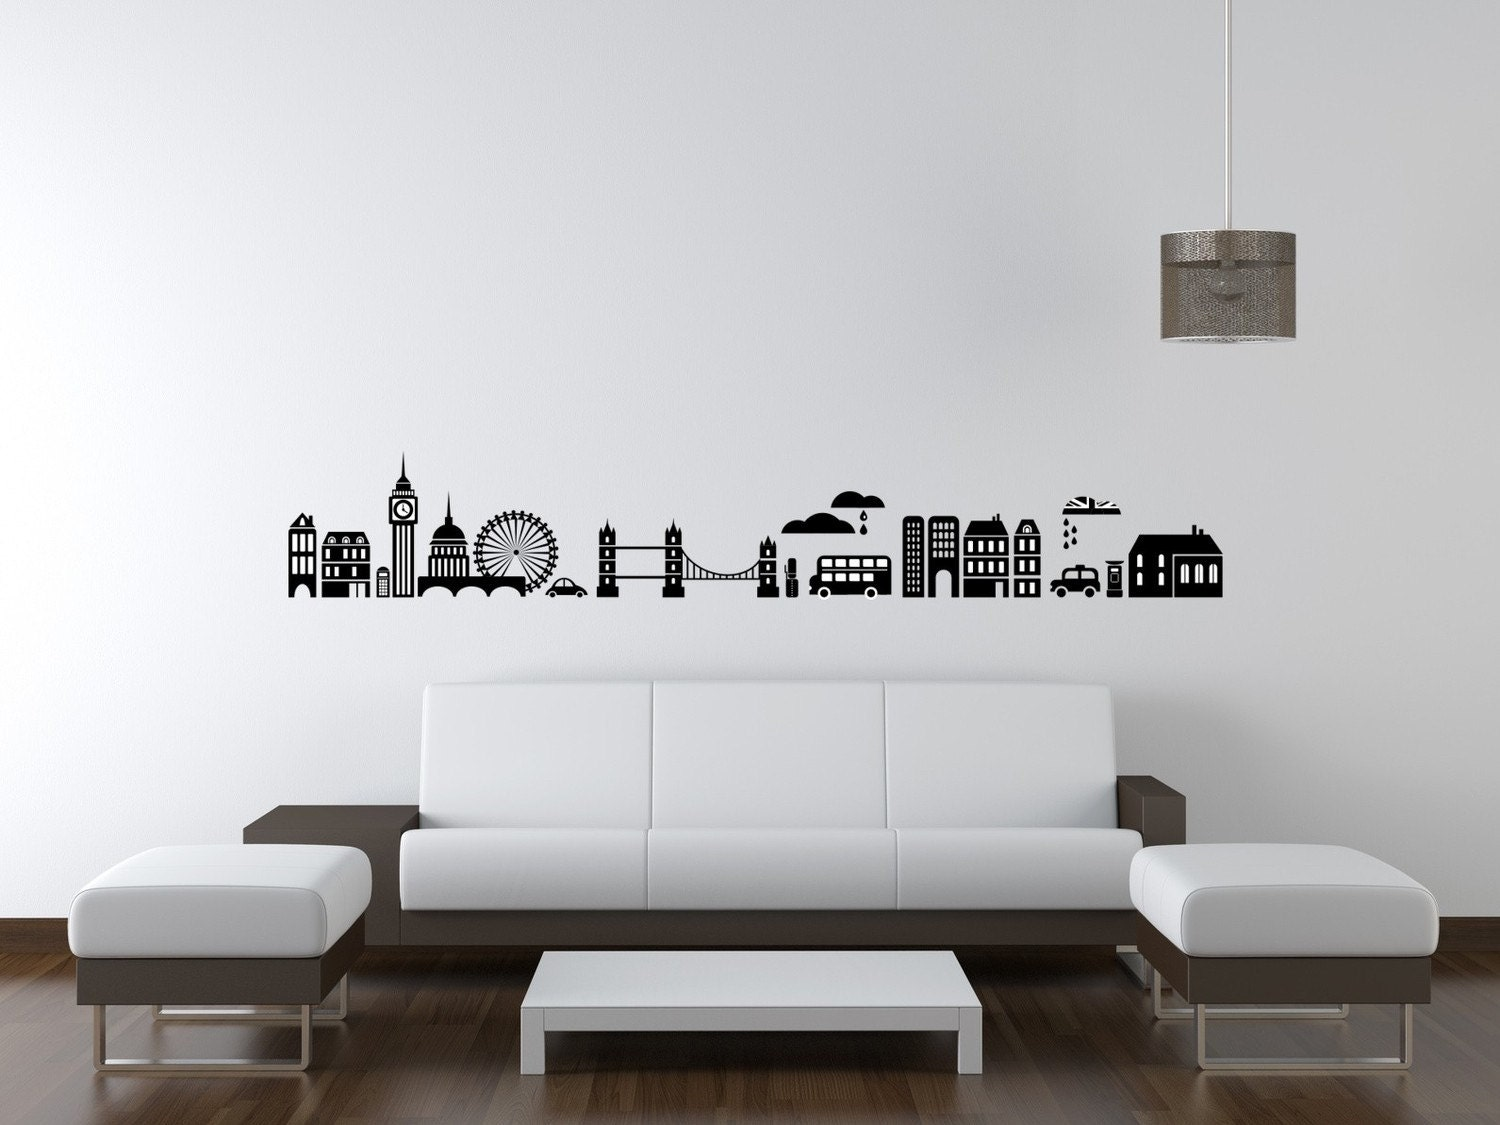 London Wall Stickers London Skyline Wall Decal City Cityscape By  Wallstargraphics